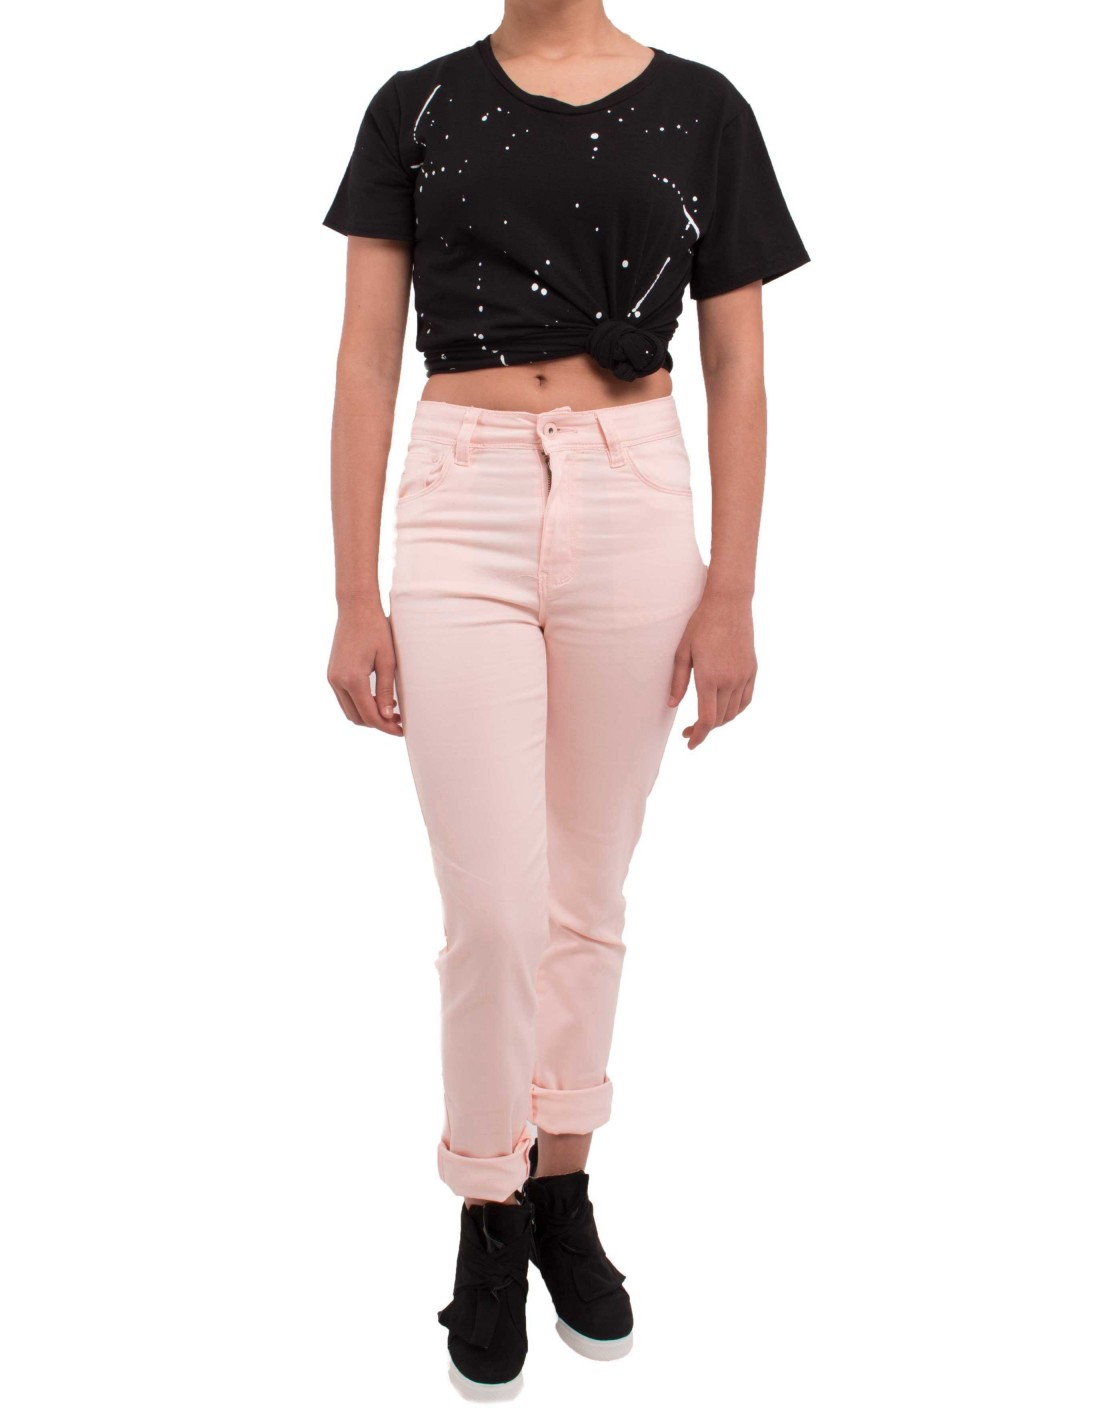 Jean rose clair coupe droite taille haute type jean - Jeans femme taille haute coupe droite ...